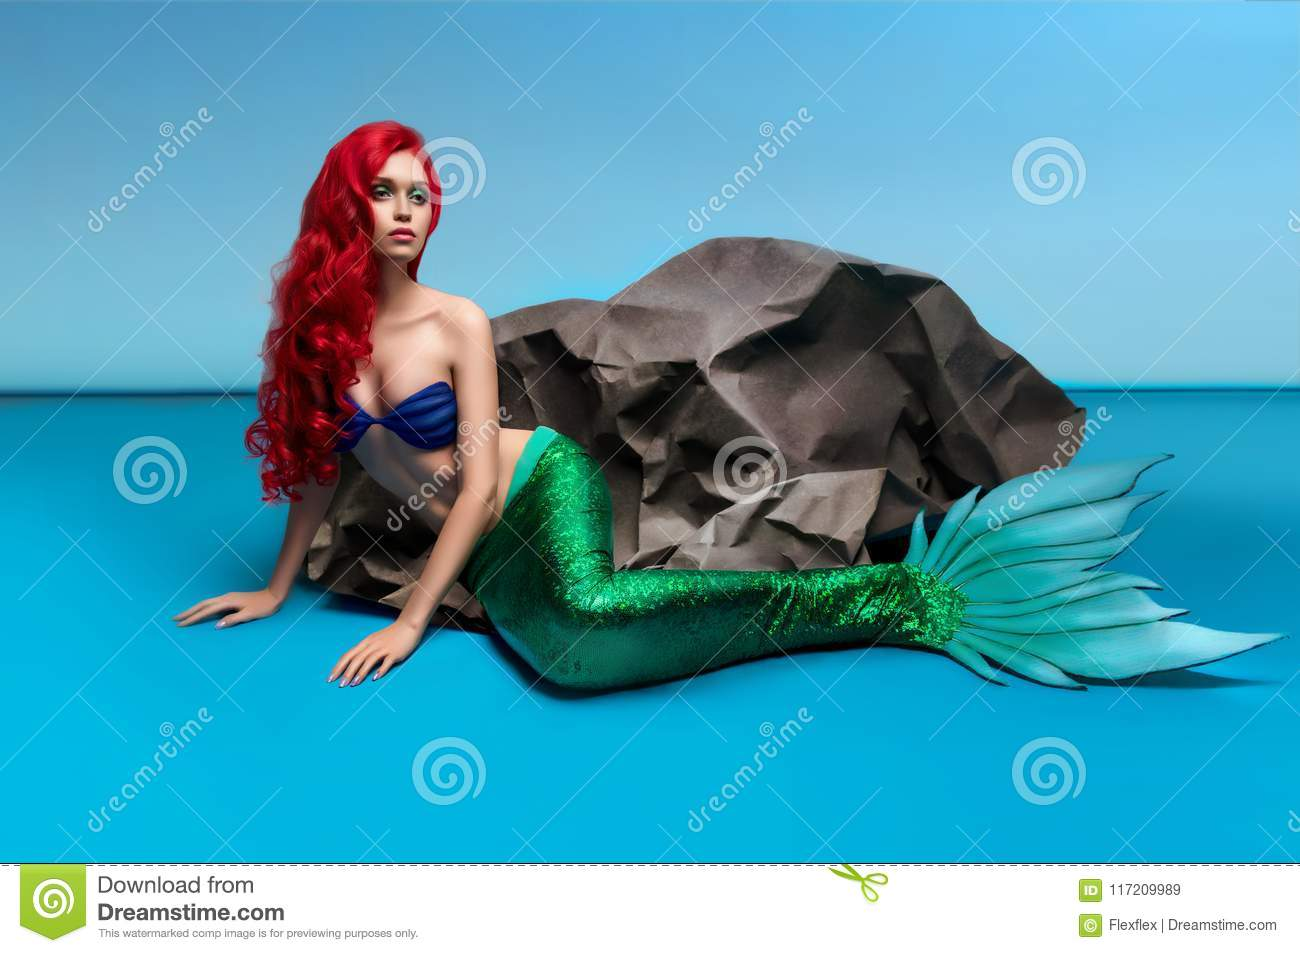 Mermaid with red hair resting near stone